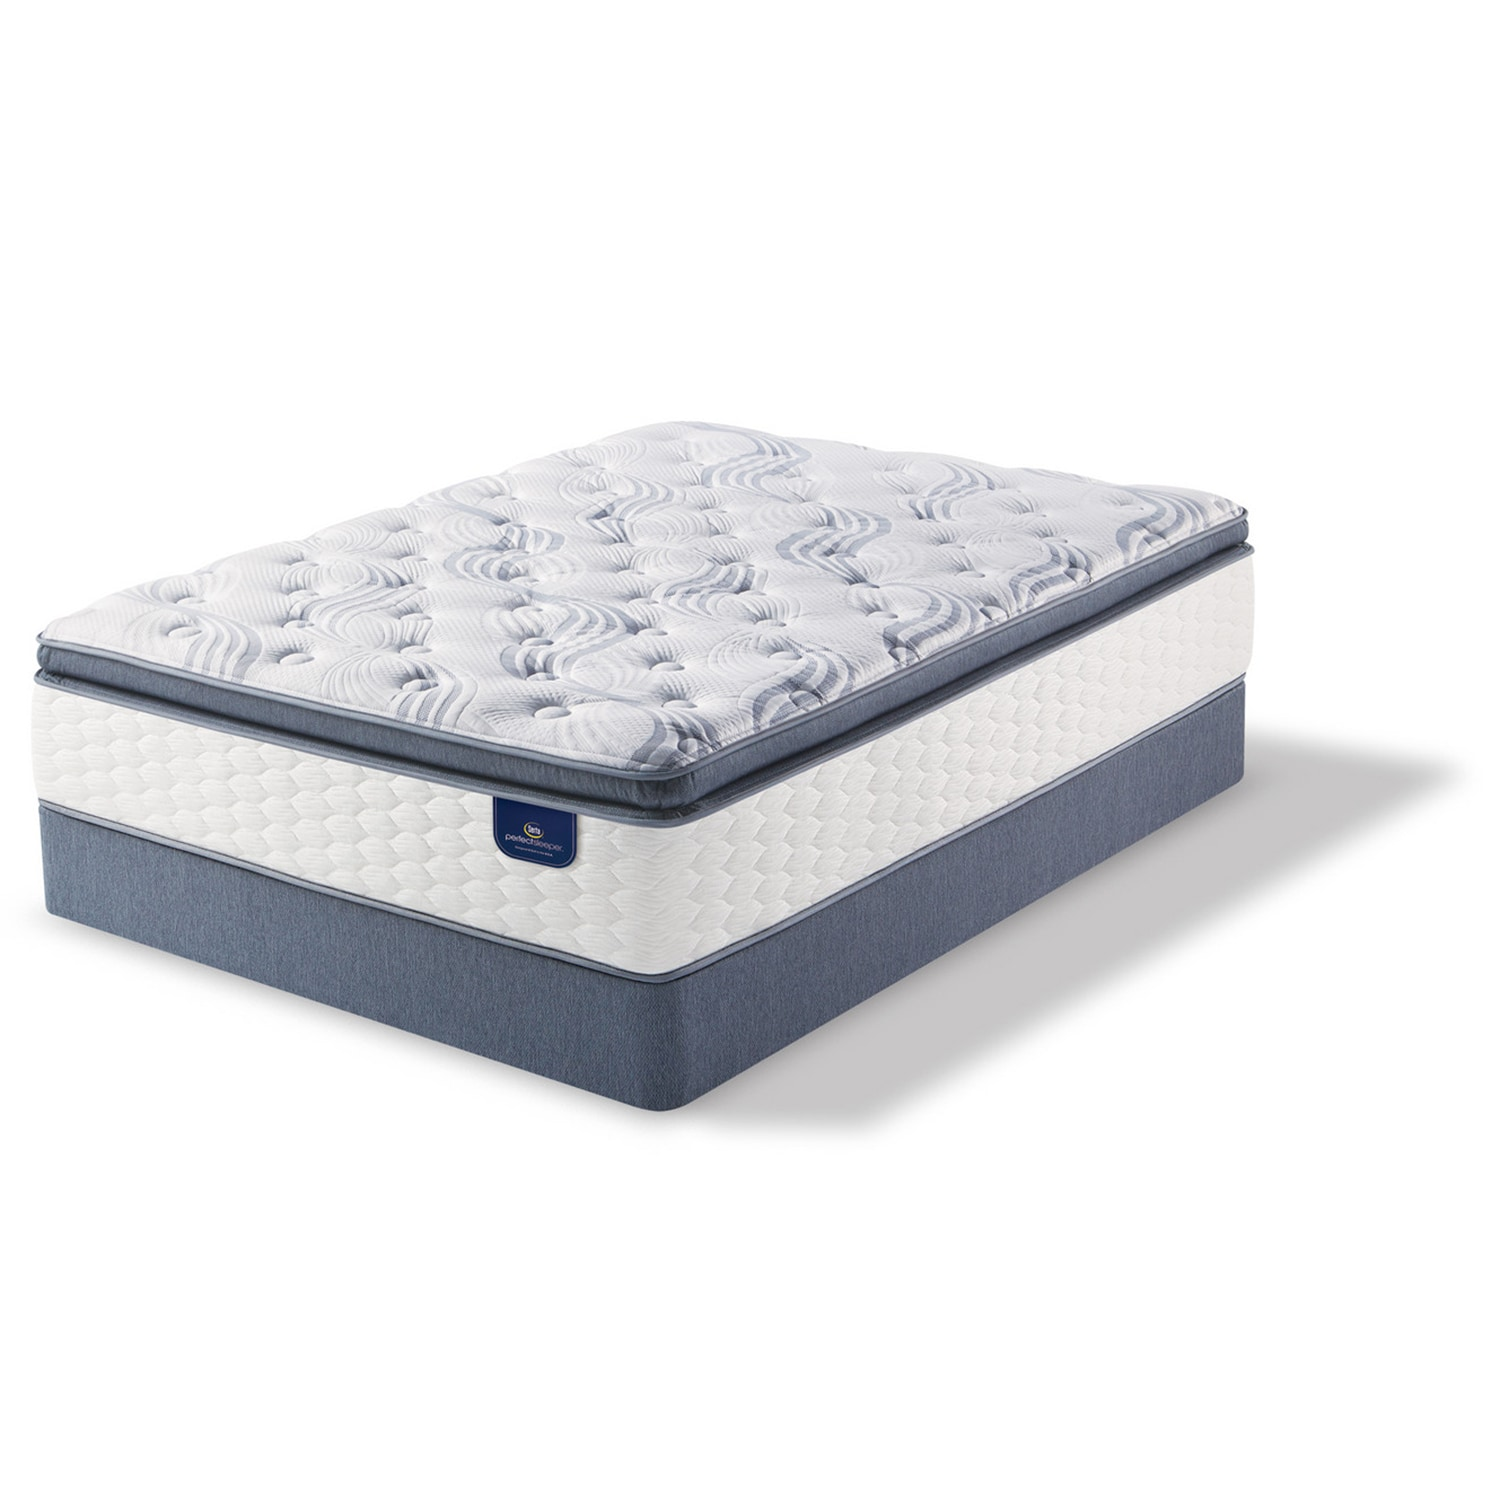 topper c mattresses top pillow img delivery miracoil next day double select mattress pillowtop htm sticker